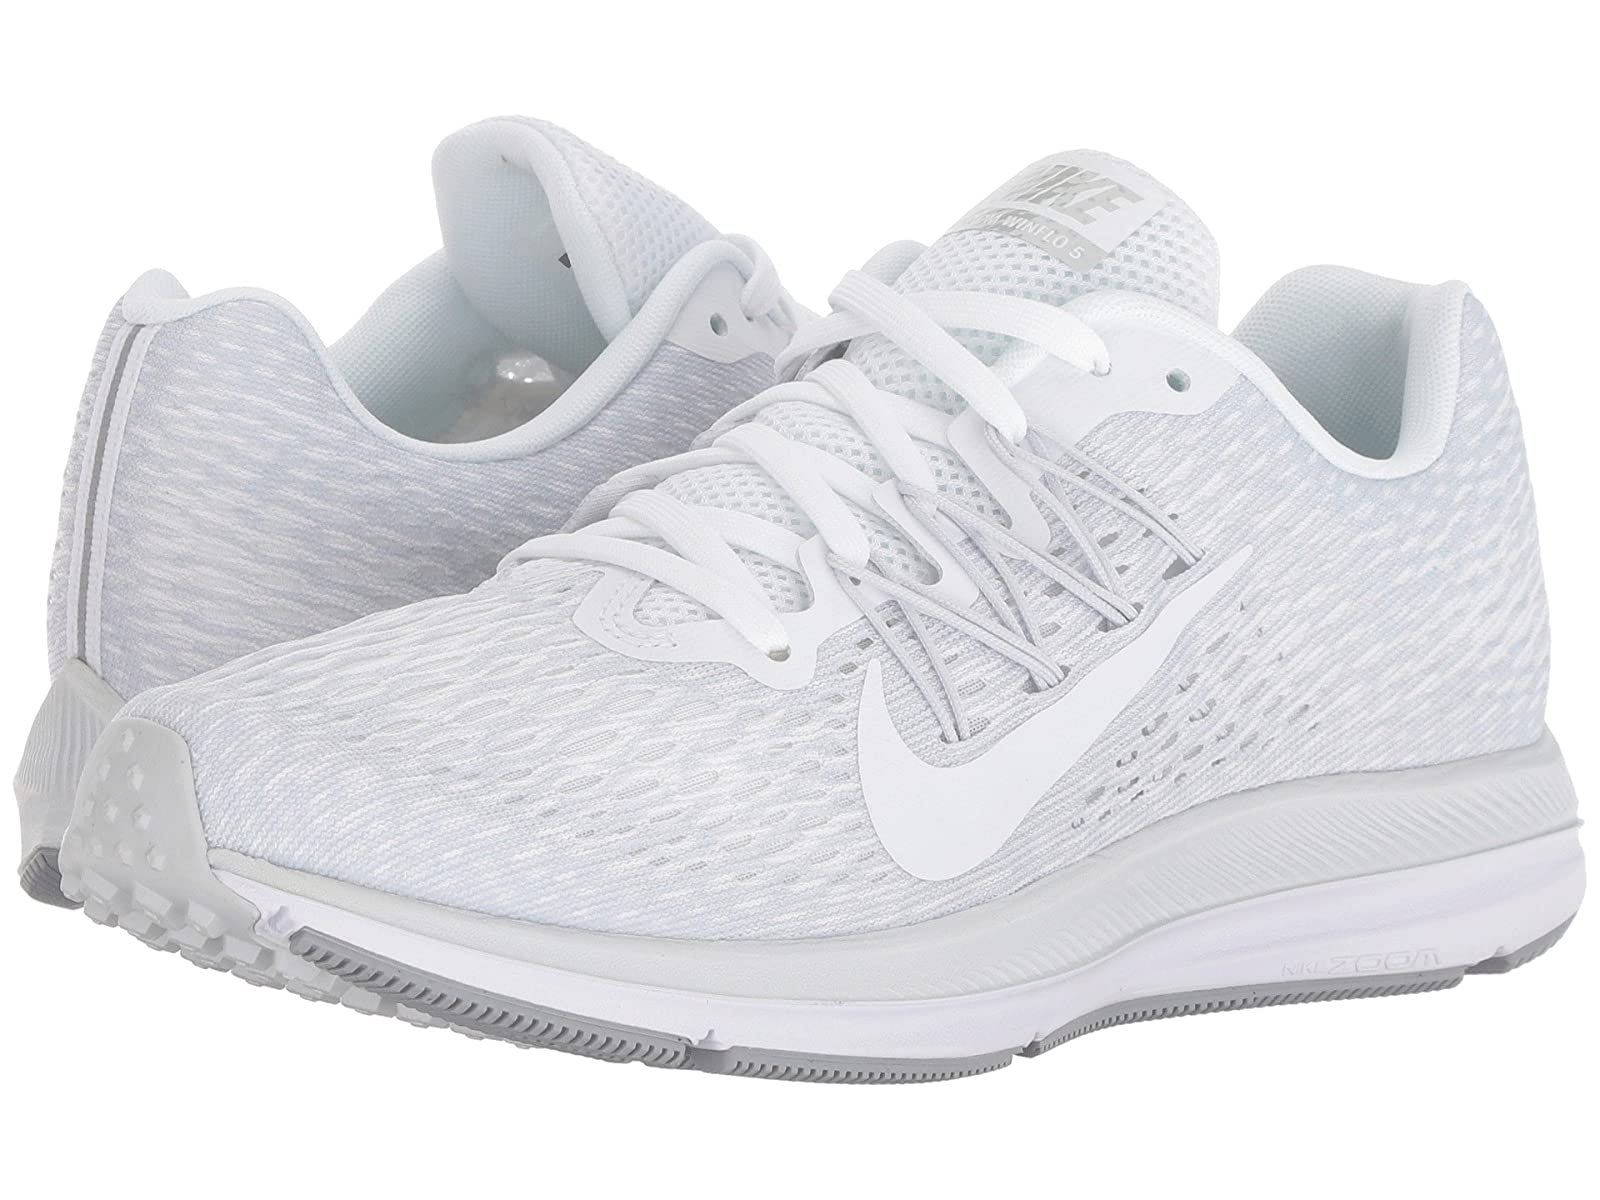 Nike Air Zoom Winflo 5Atmospheric grades have affordable shoes